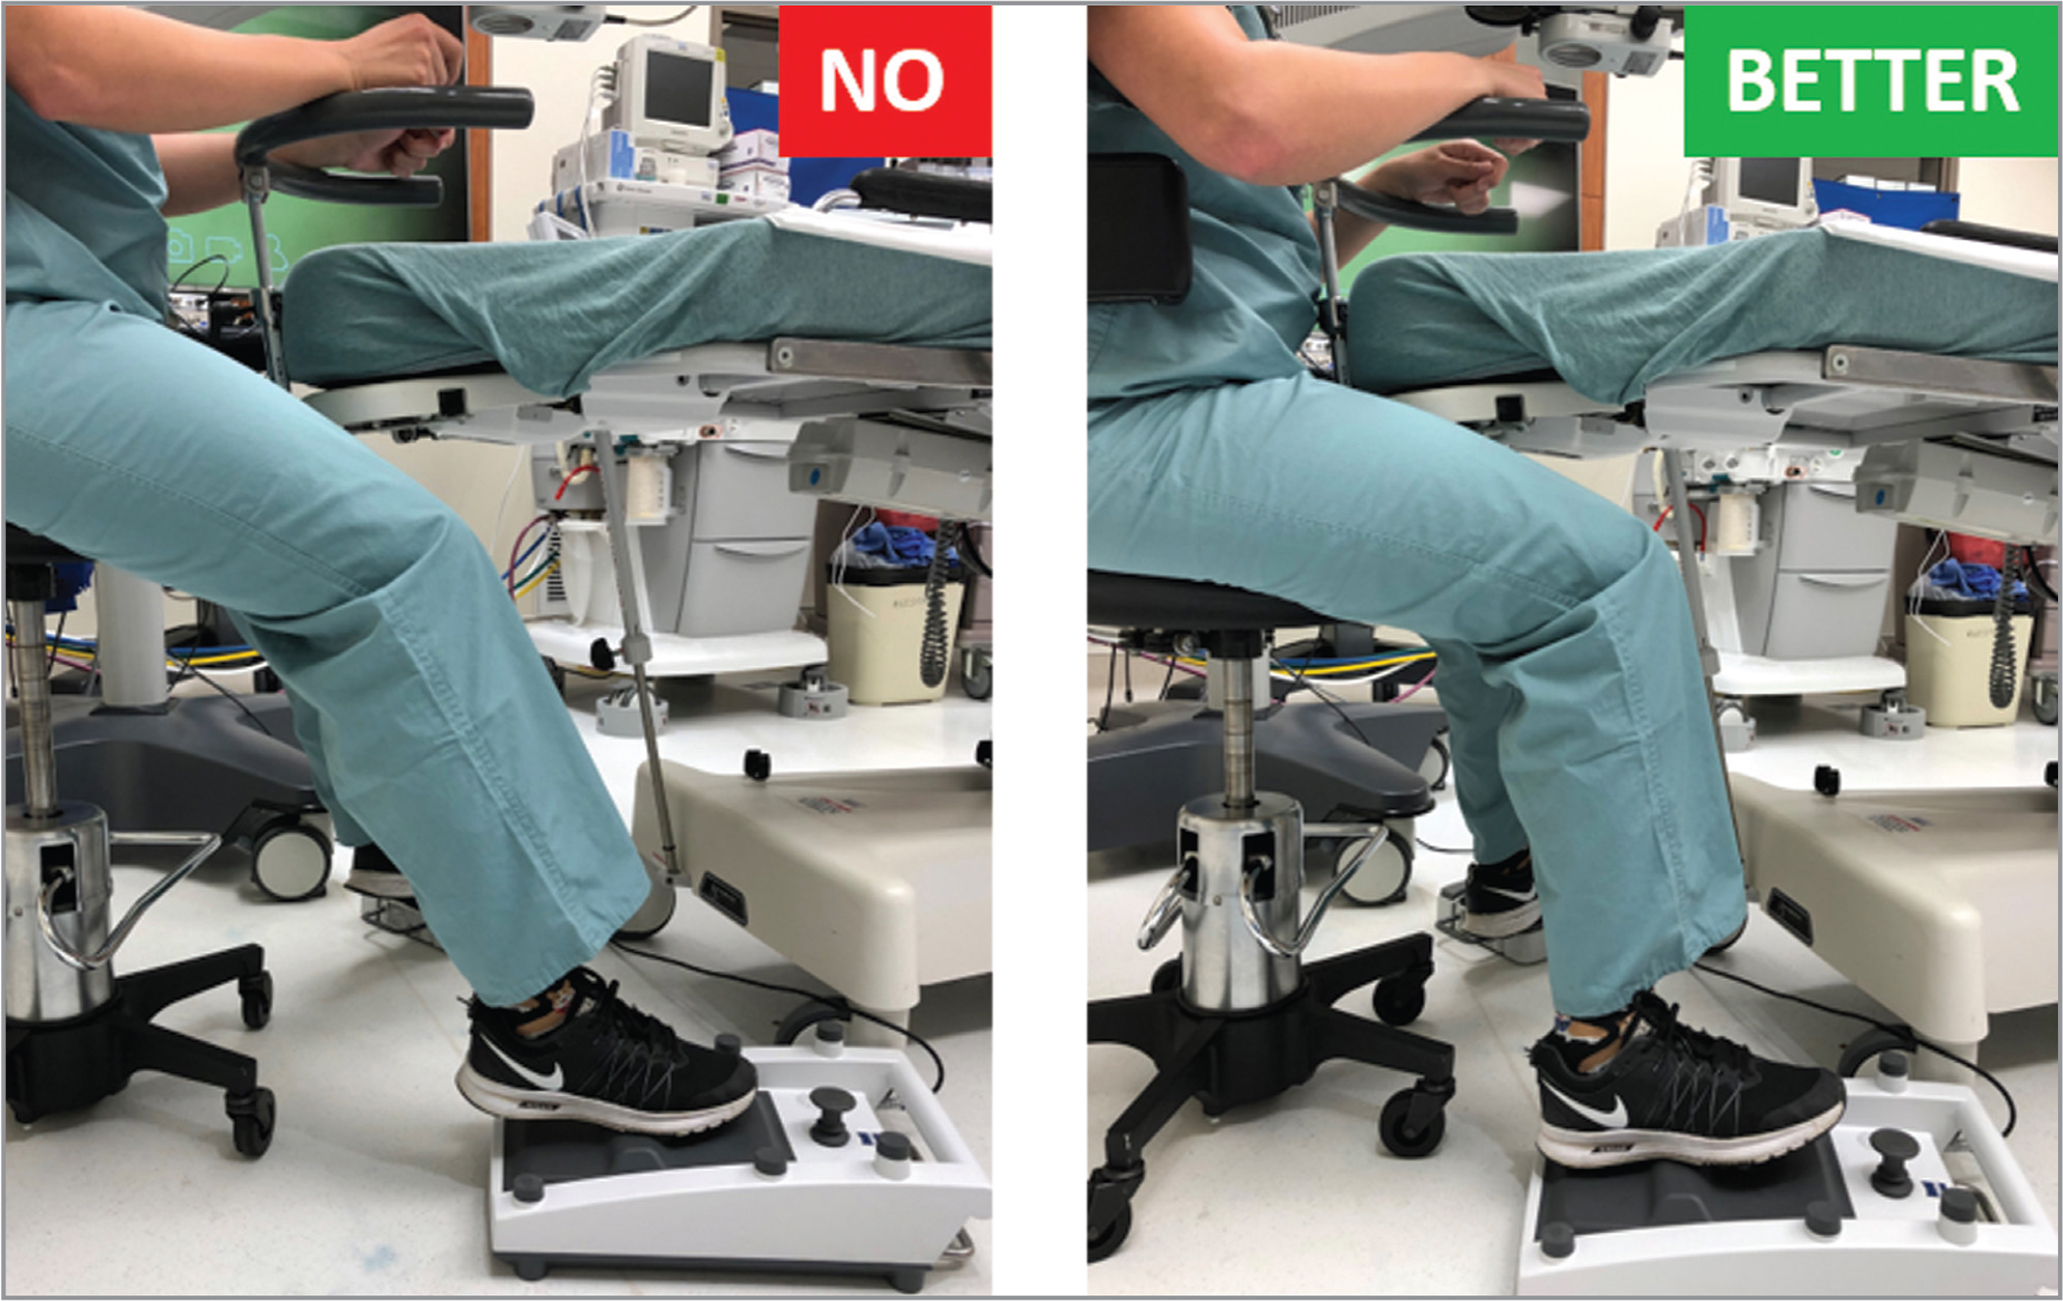 Left: The surgeon's chair is too high and the pedals too far away, straining the back, hips, legs, and feet. Right: The surgeon's hips are squared with knees bent at approximately 90° with feet securely planted on the pedals.